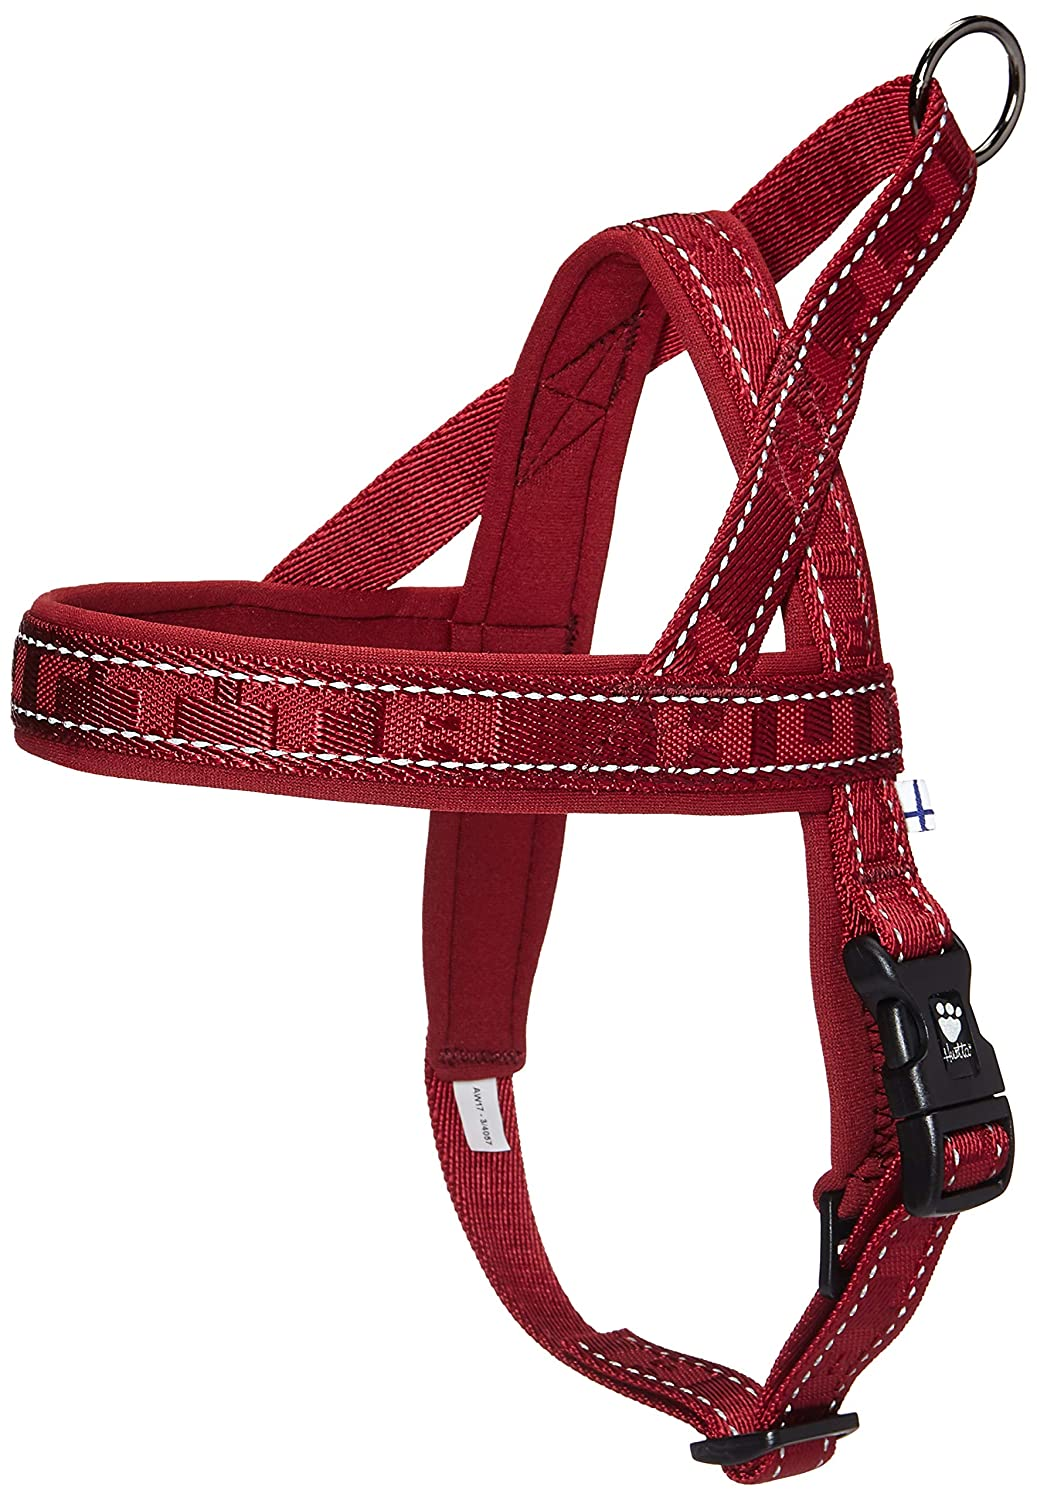 Lingon 1822 Hurtta Casual Padded Dog Harness, River, 28 in